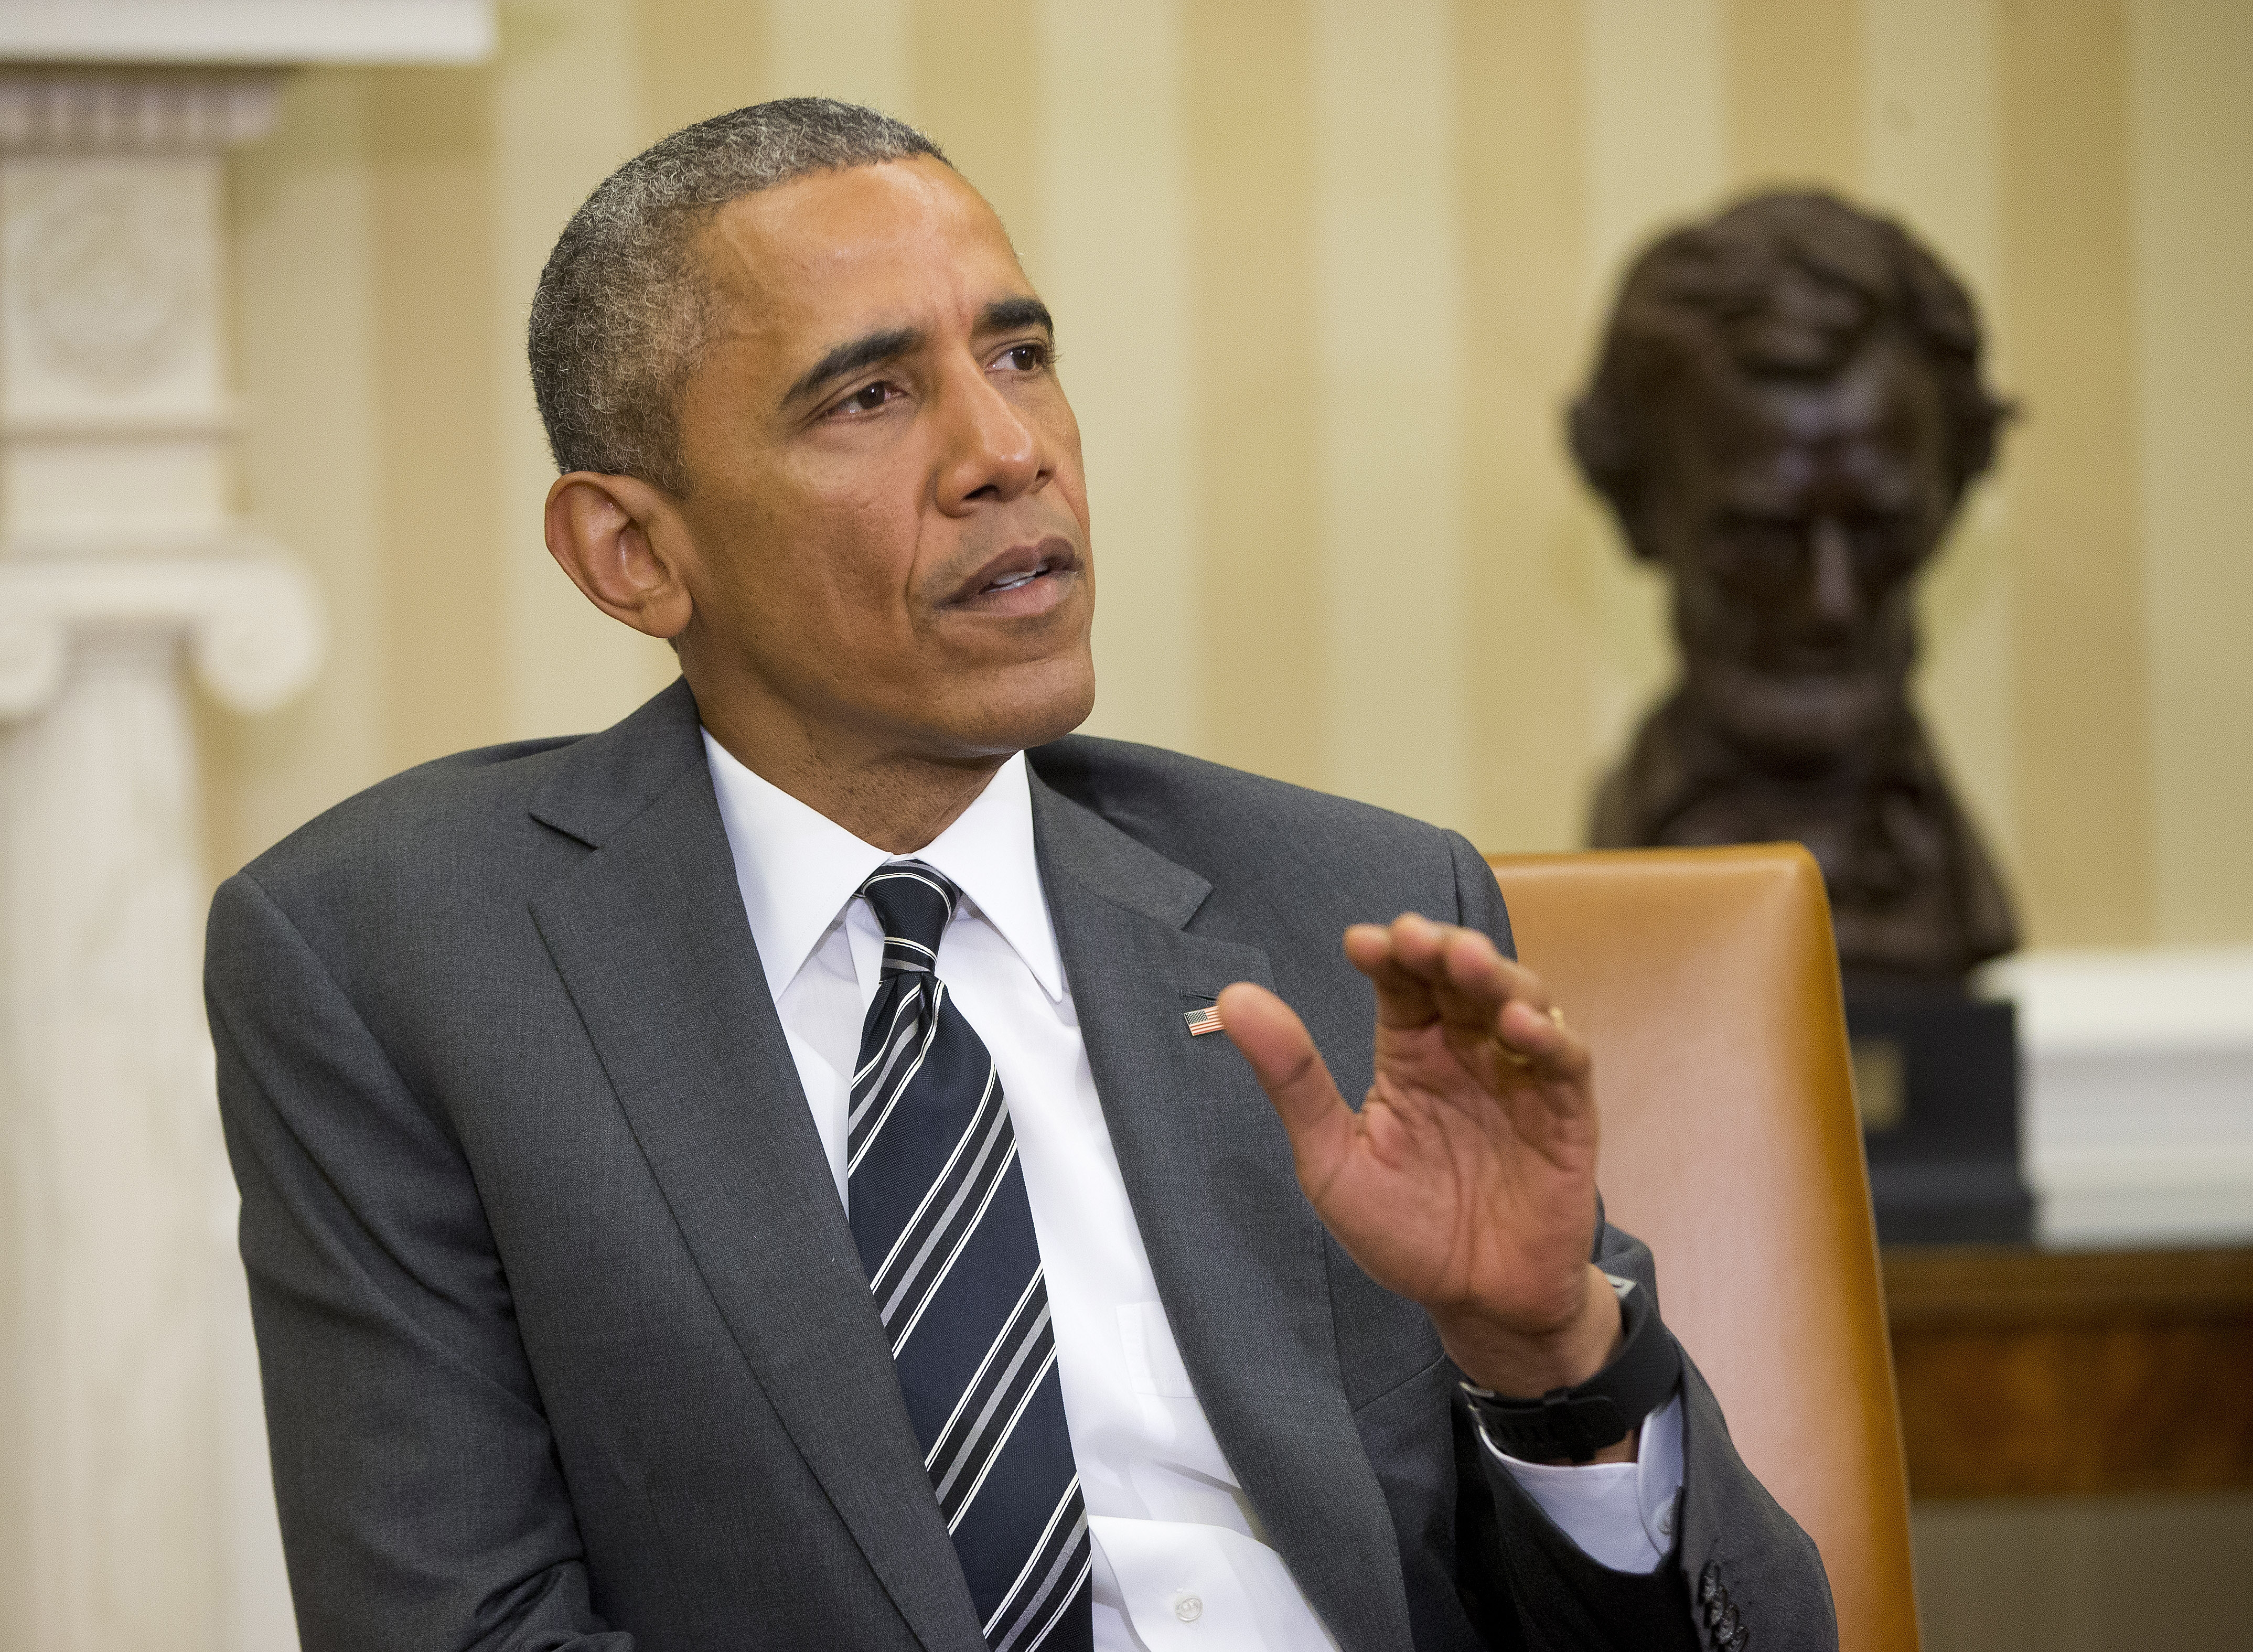 President Barack Obama speaks to members of the media during his meeting with NATO Secretary General Jens Stoltenberg, Tuesday, May 26, 2015, in the Oval Office of the White House in Washington.